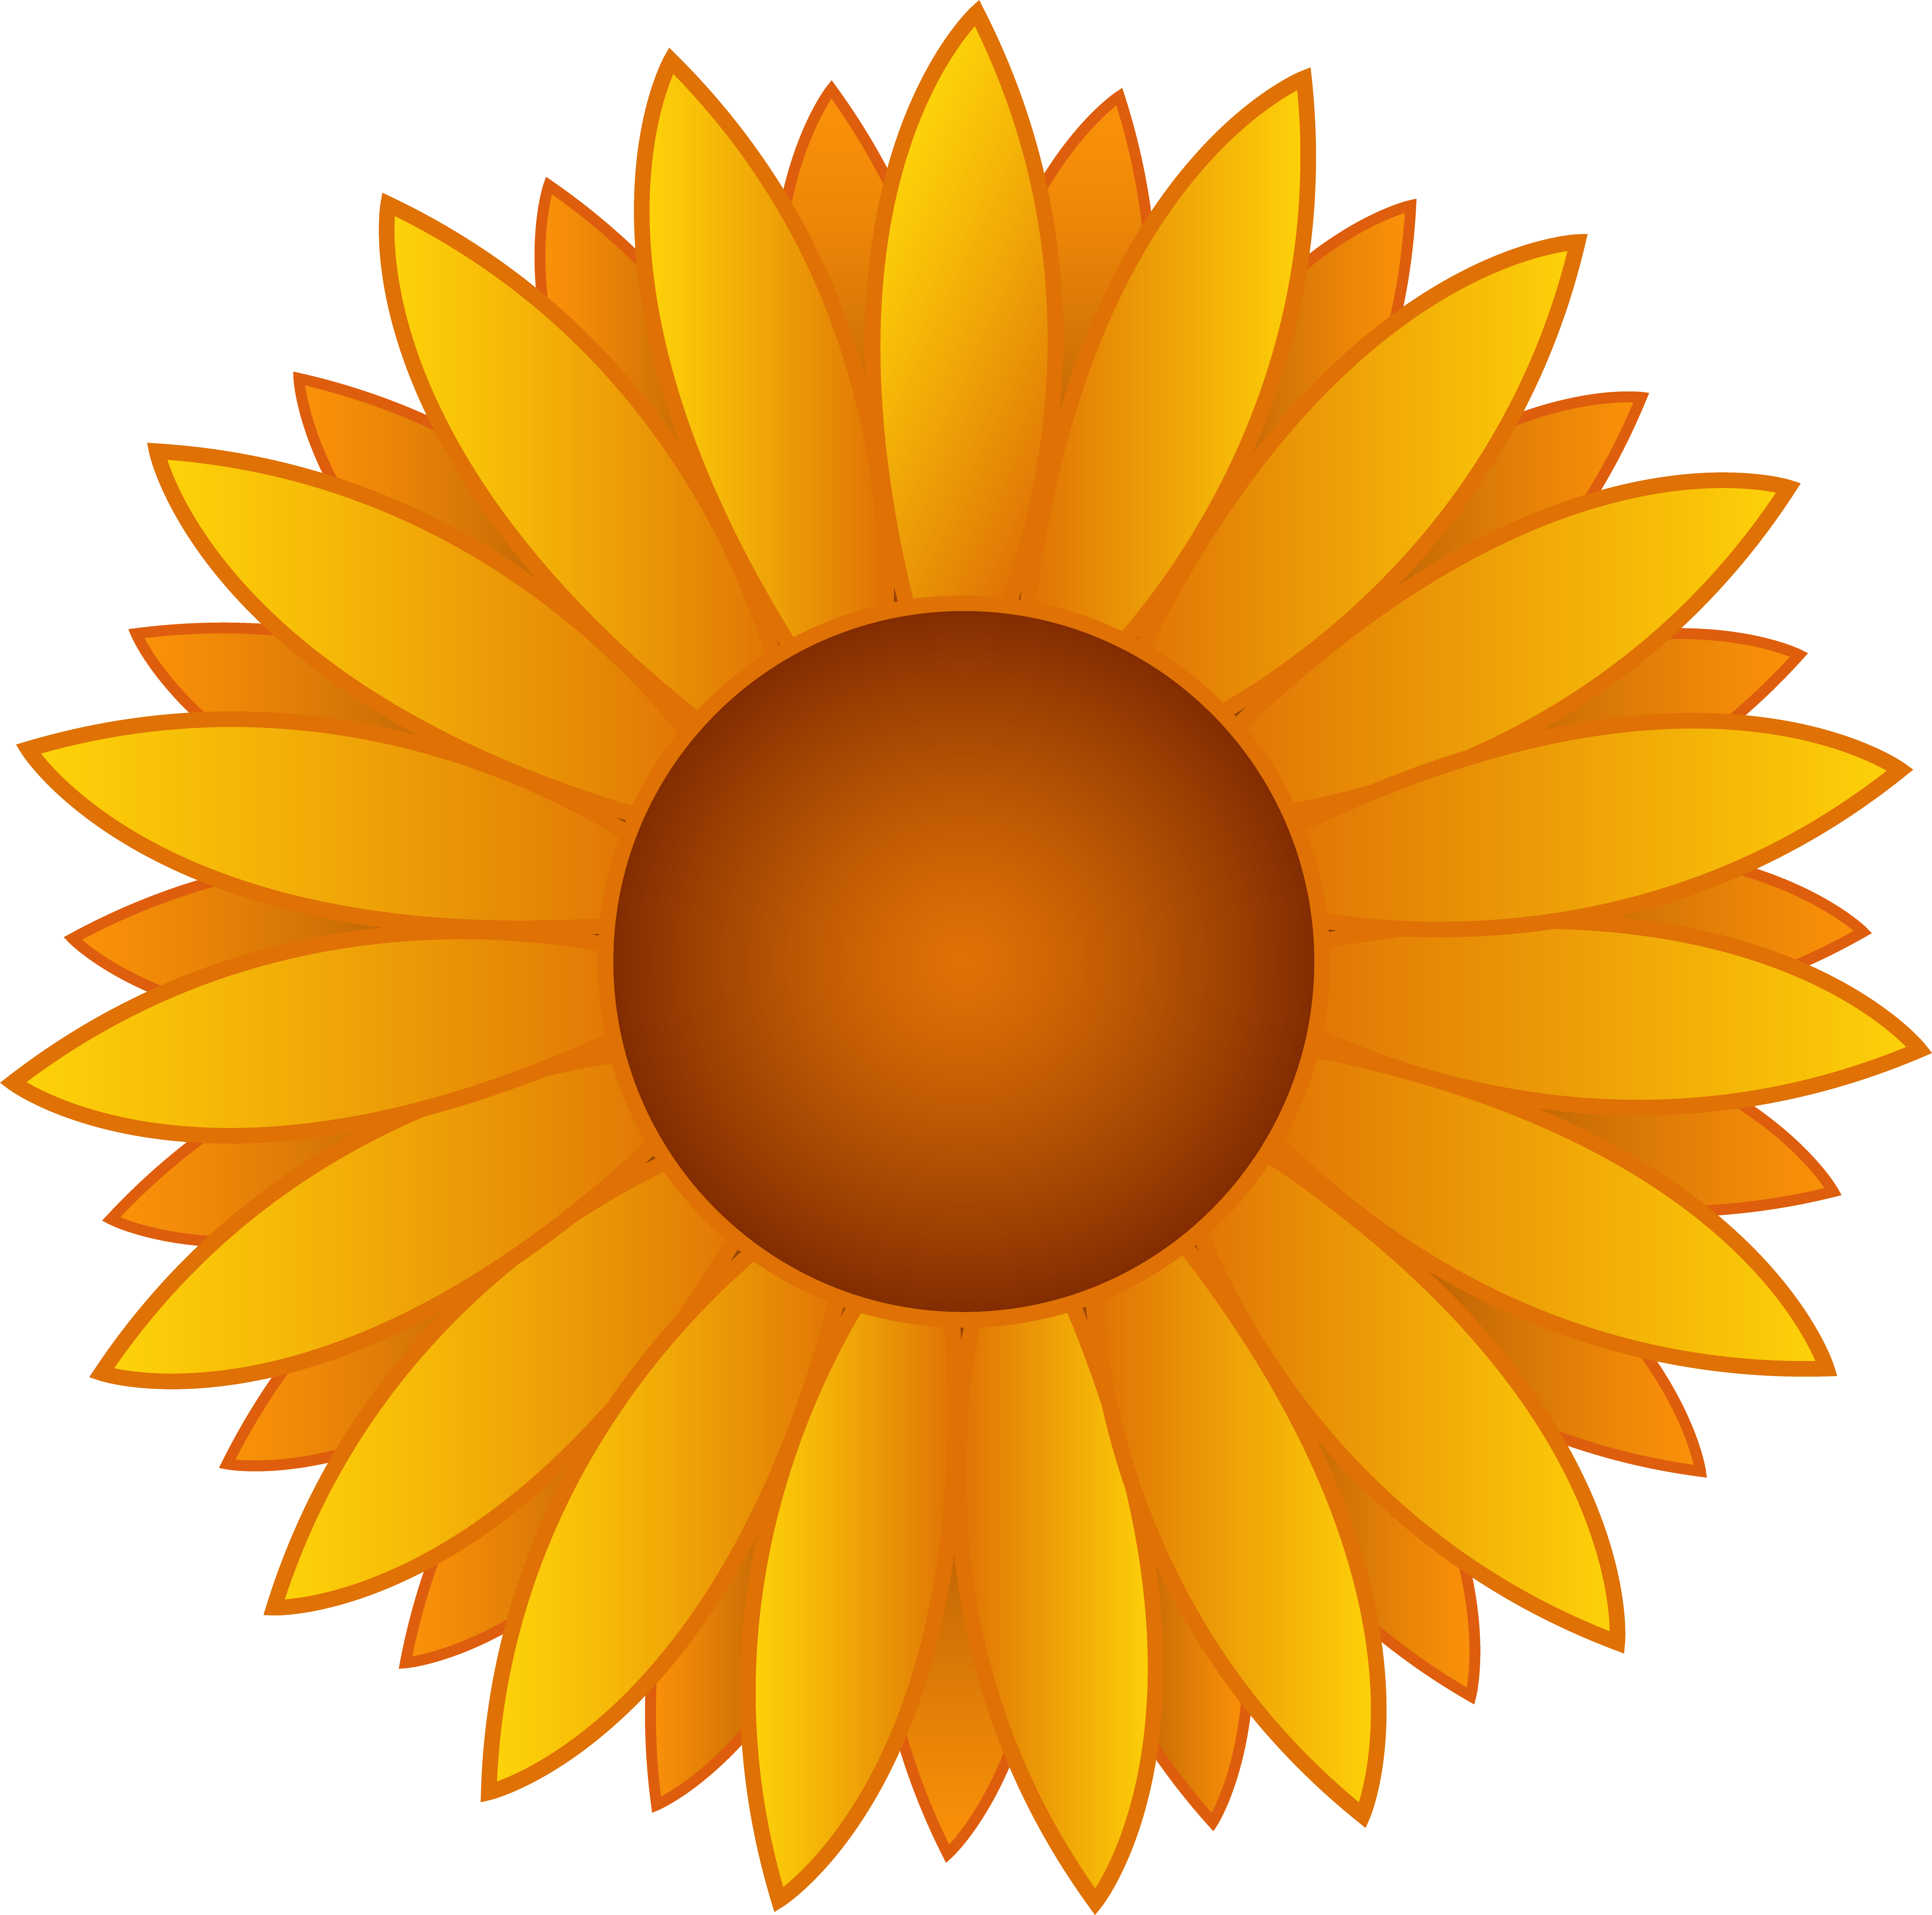 sunflower clip art with clear background clipart panda sunflower clipart images sunflower clip art outline